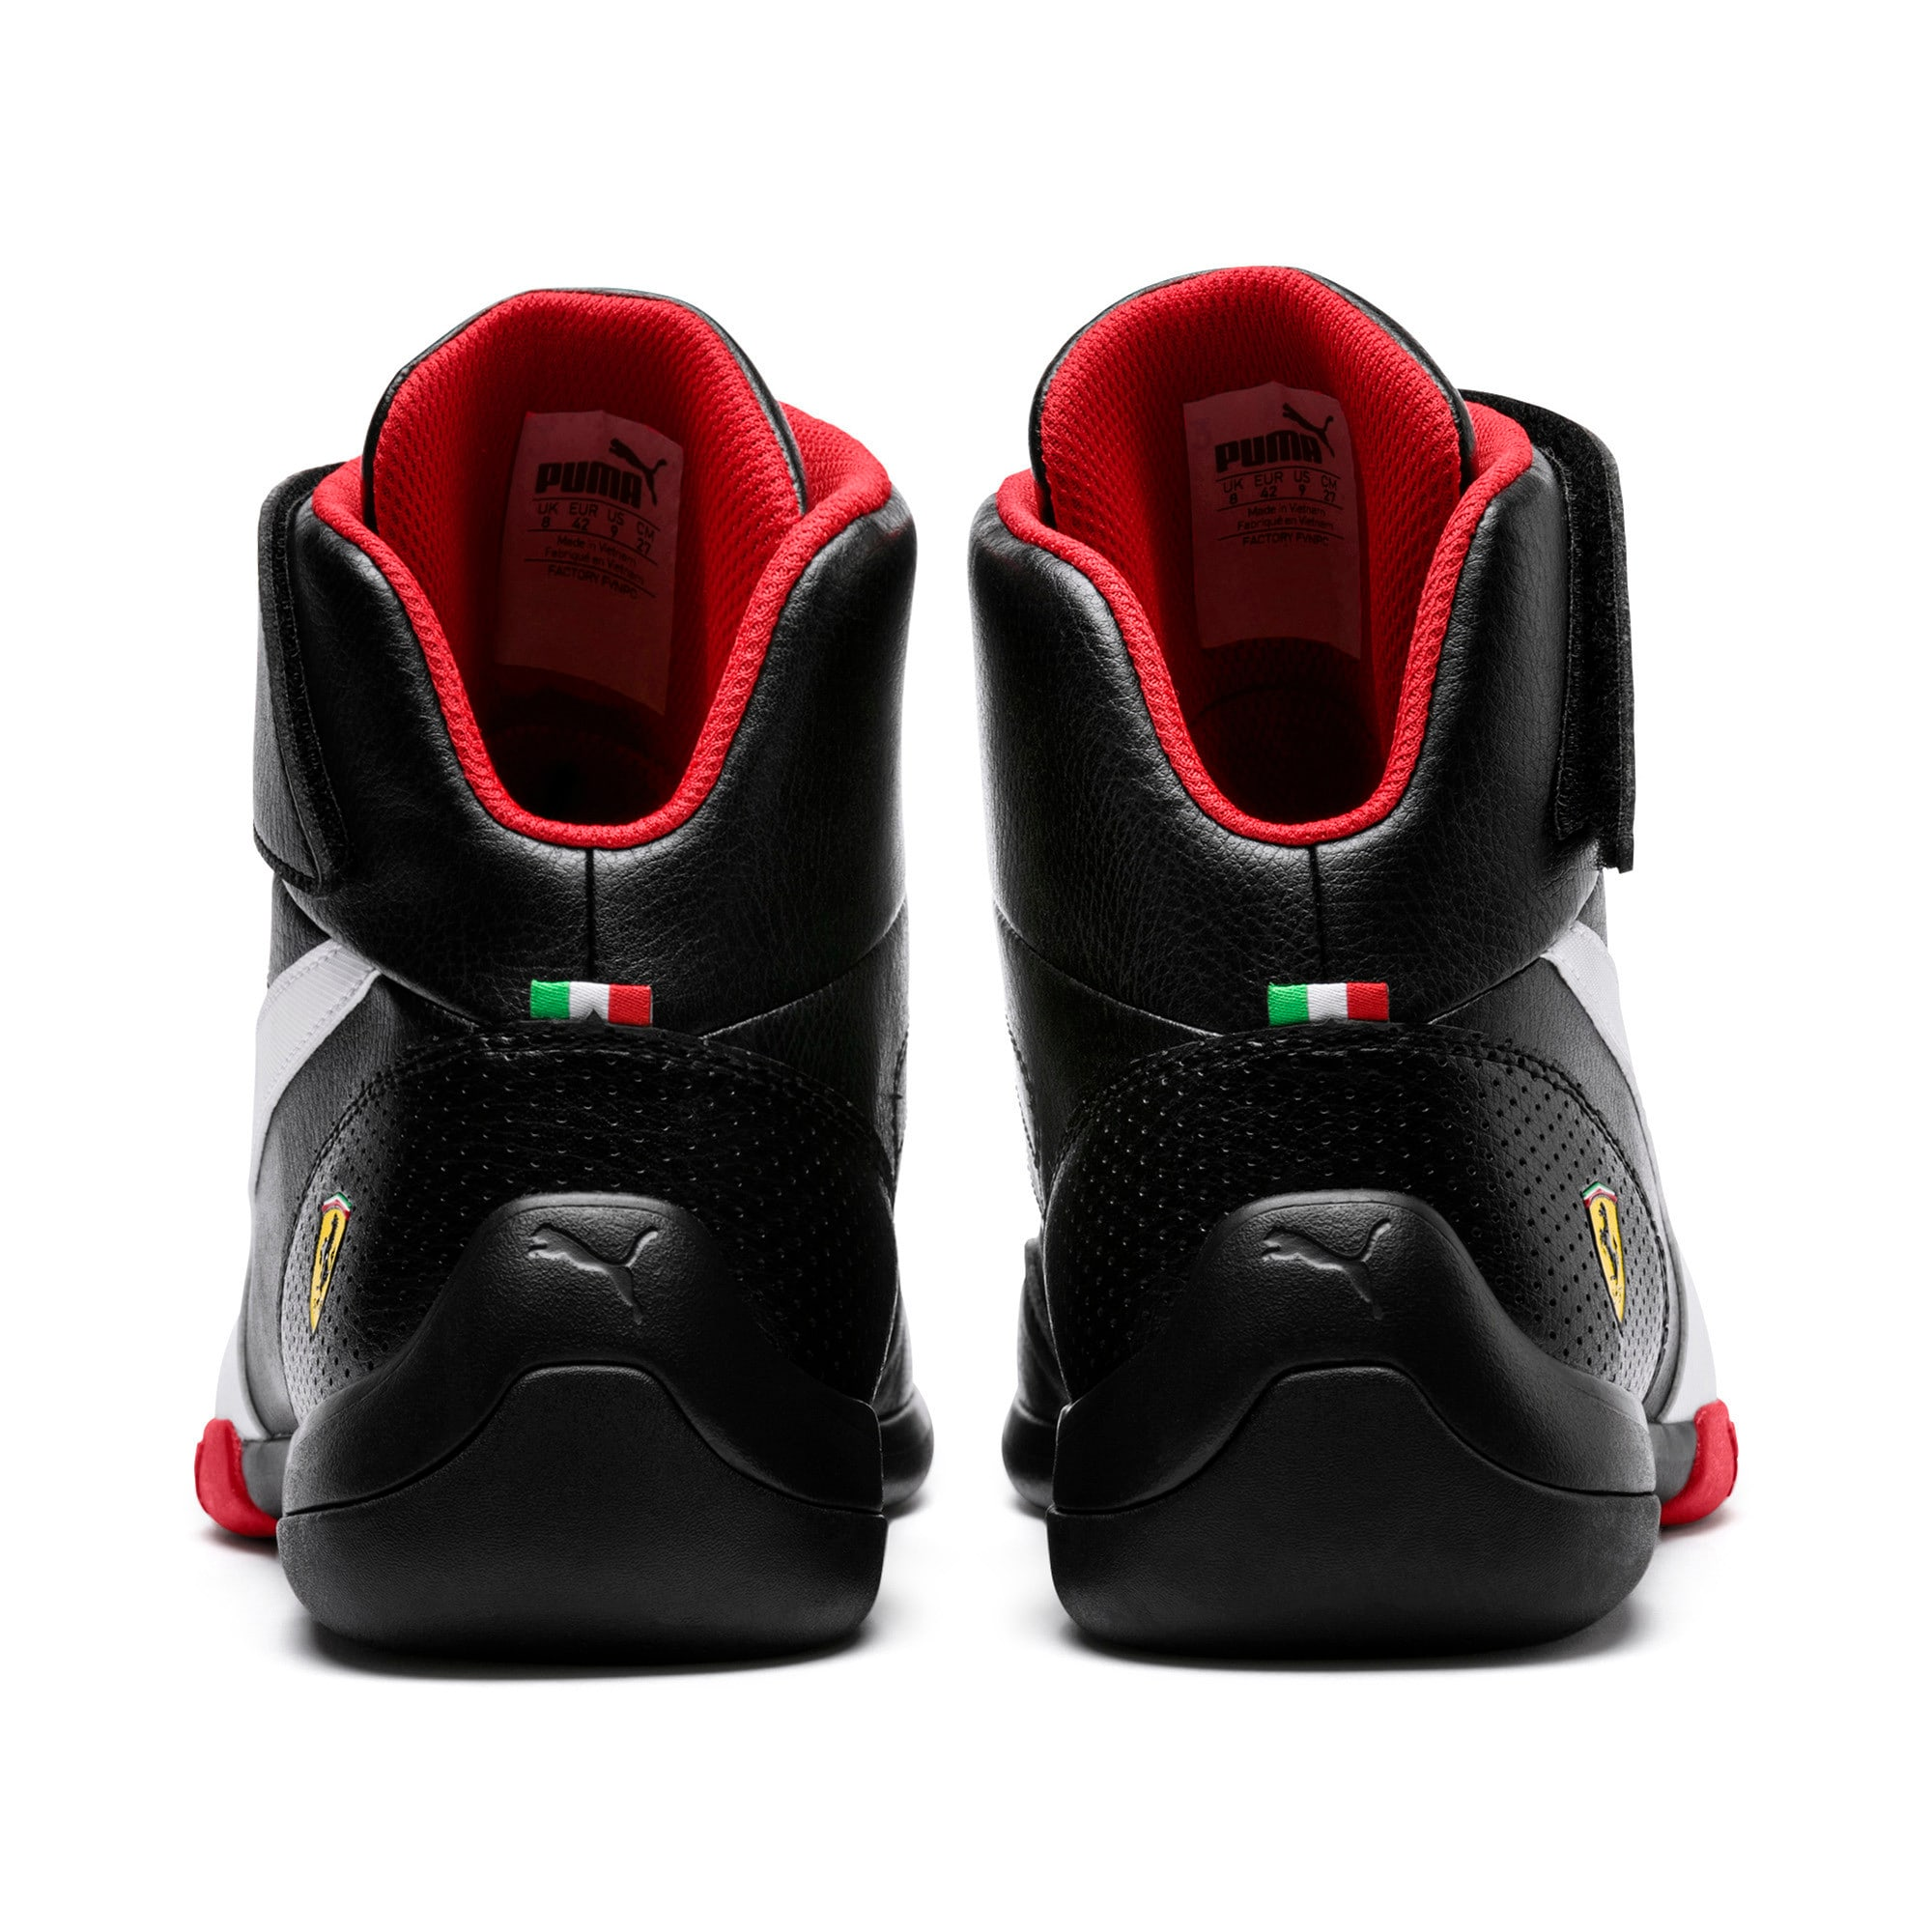 Thumbnail 4 of Scuderia Ferrari Kart Cat Mid III Hi Top Shoes, Puma Black-Puma White, medium